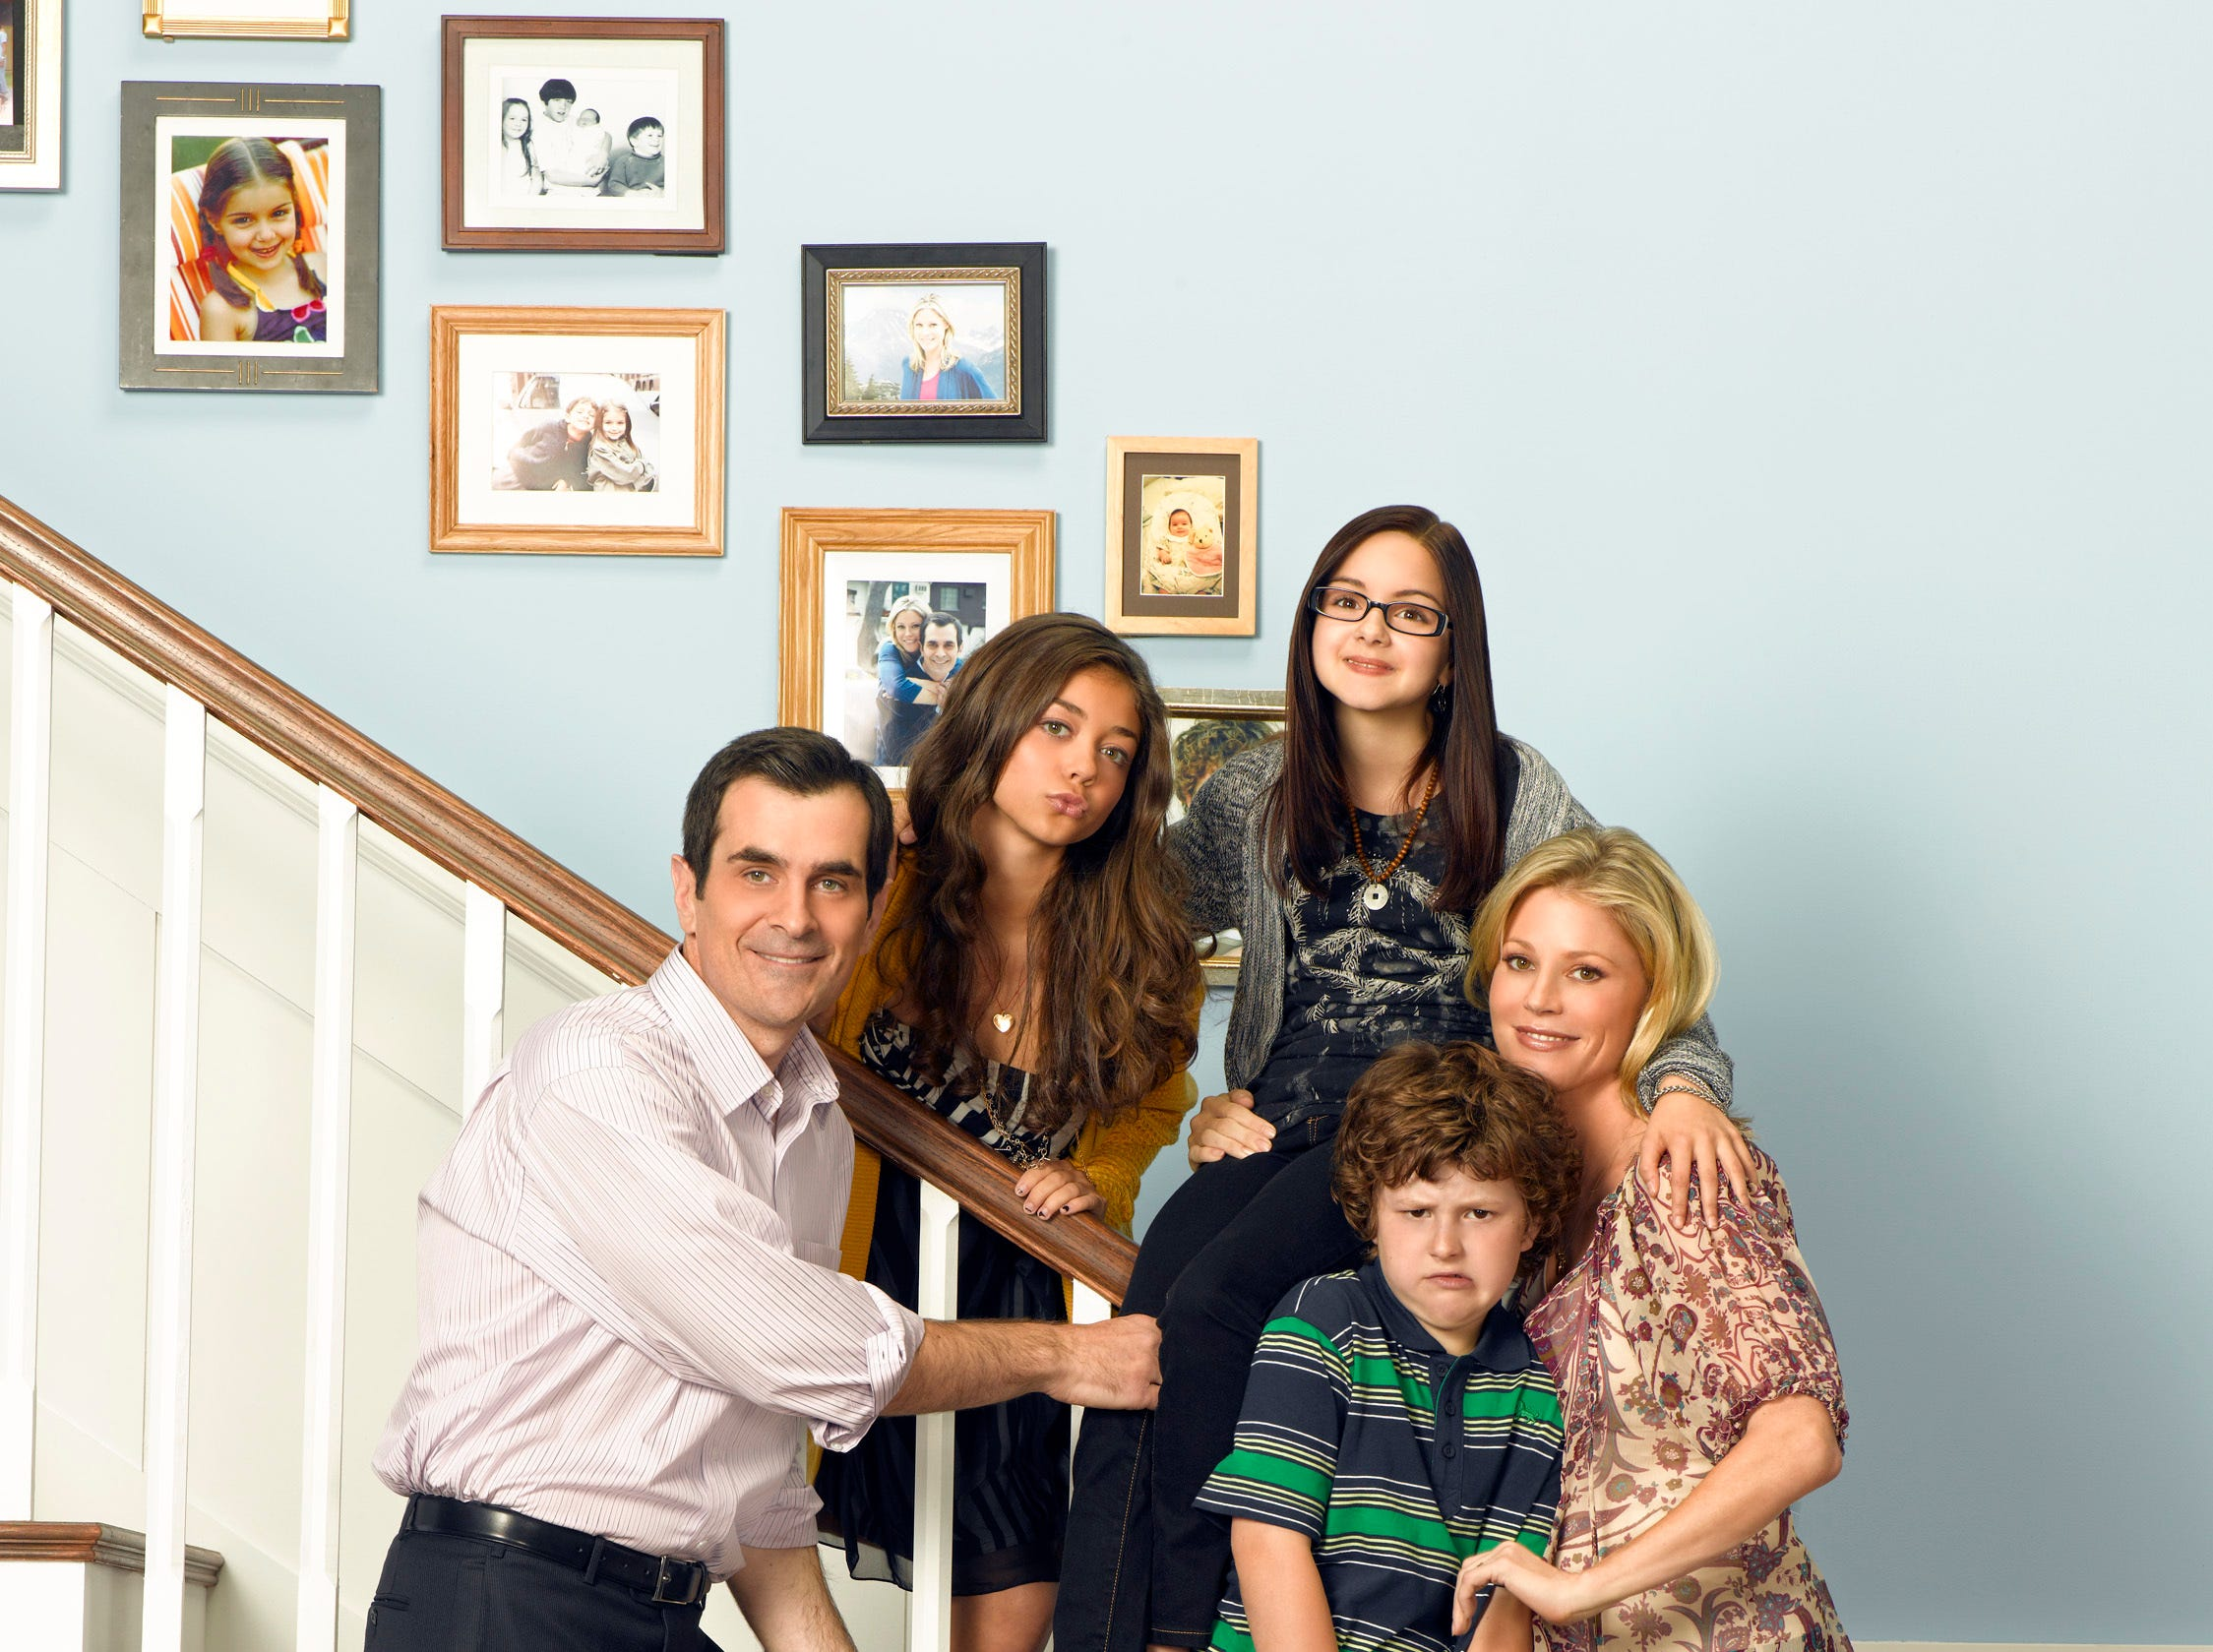 Ty Burrell as Phil, Sarah Hyland as Haley, Ariel Winter as Alex, Nolan Gould as Luke and Julie Bowen as Claire in the first season of the show.